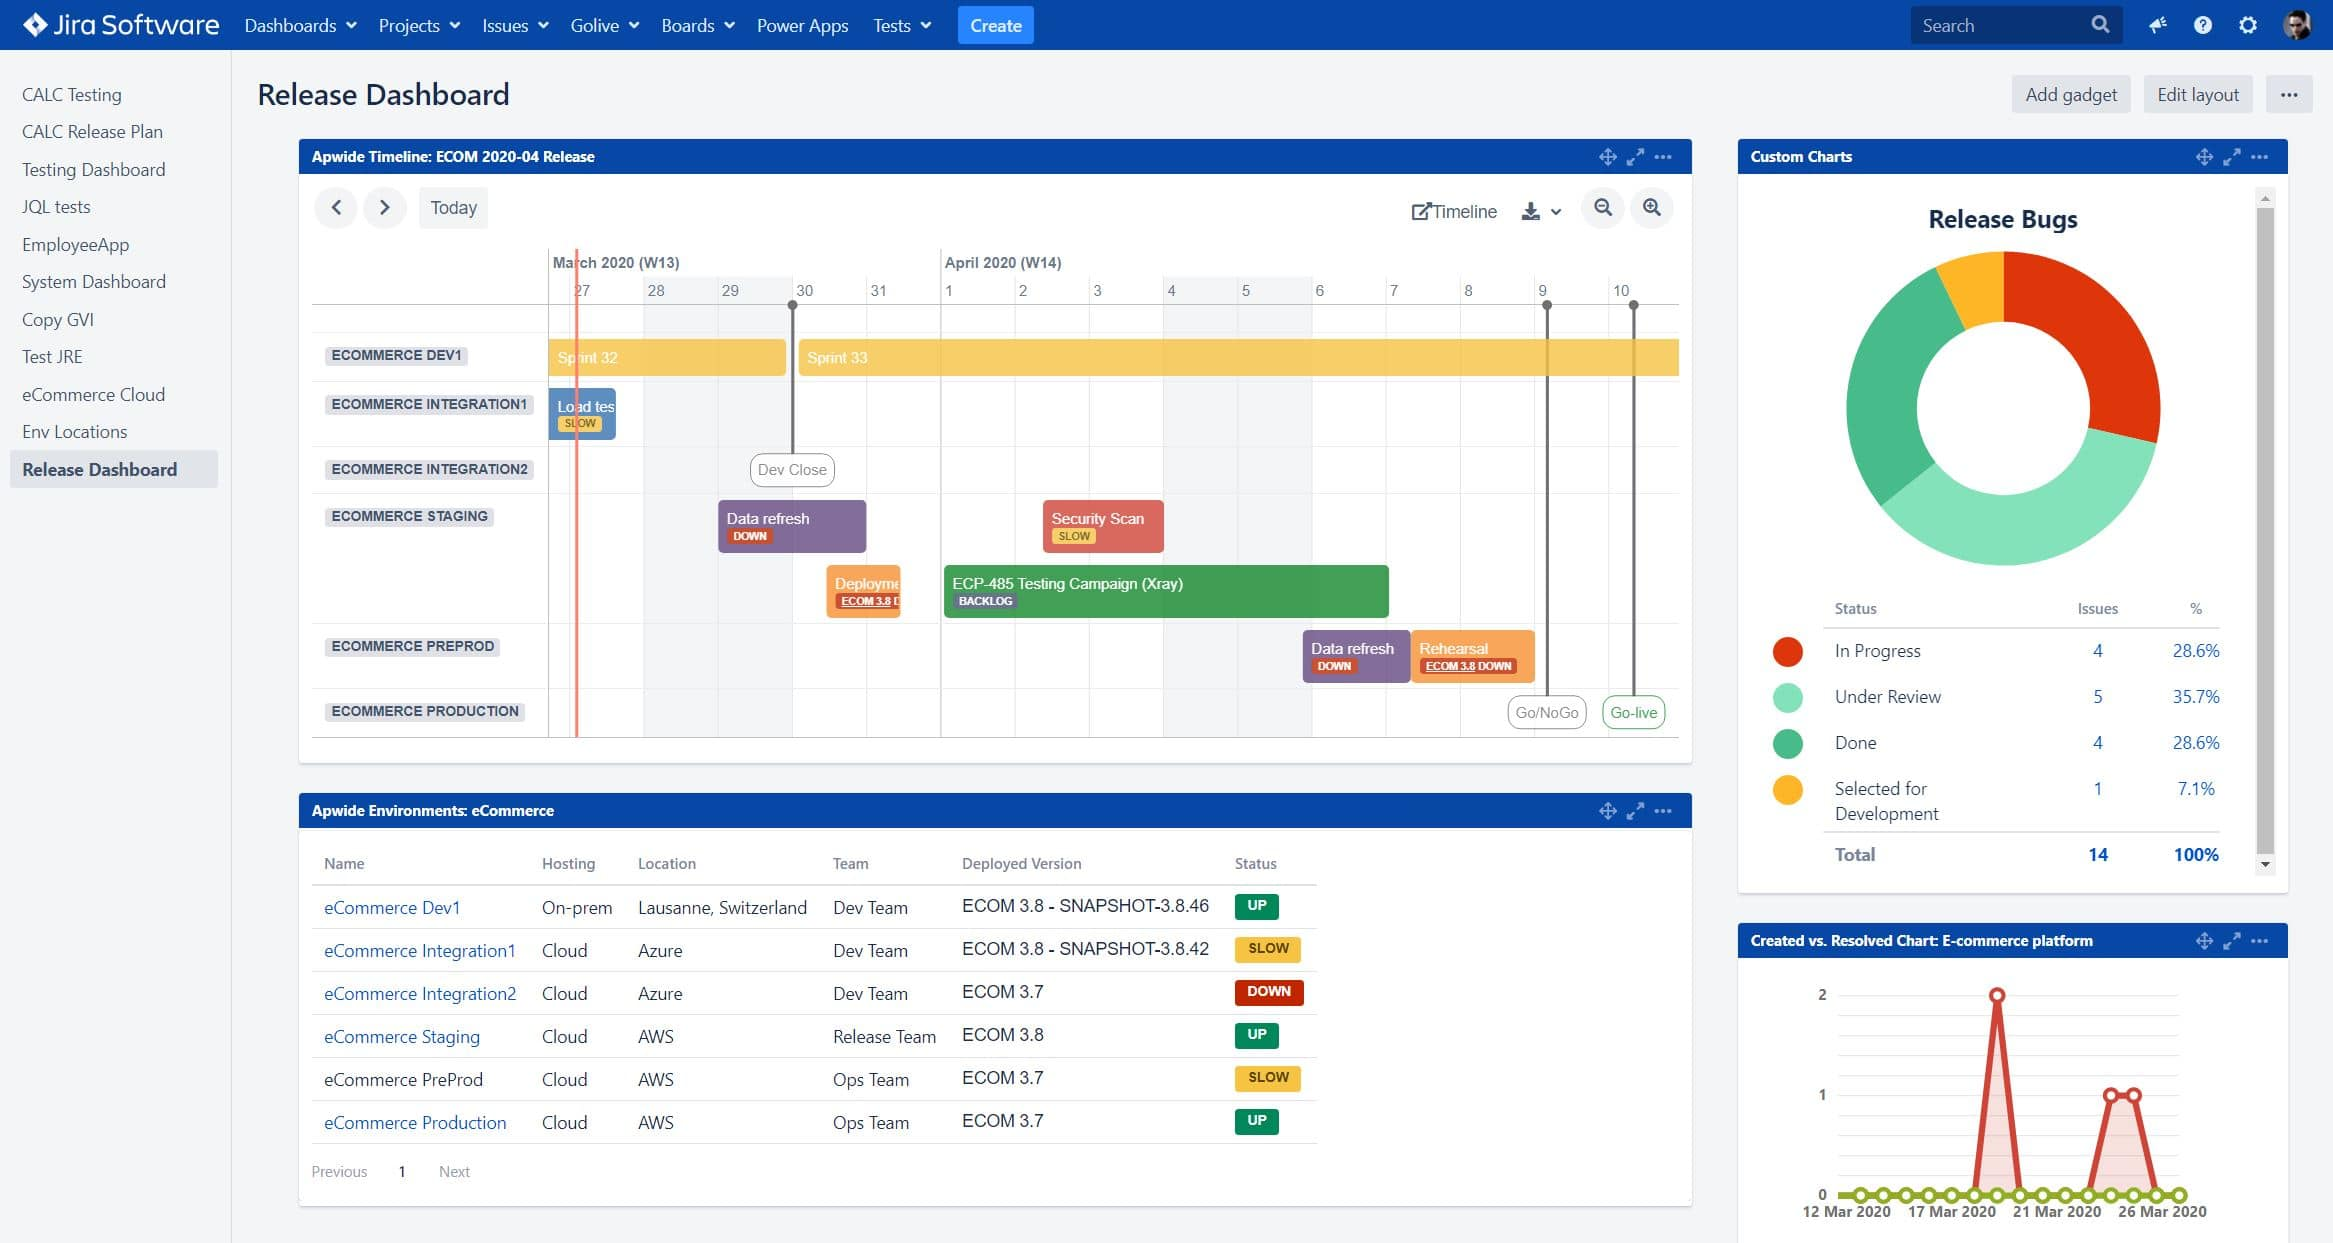 Example of Release Dashboard built in Jira using Apwide Golive and Custom Charts